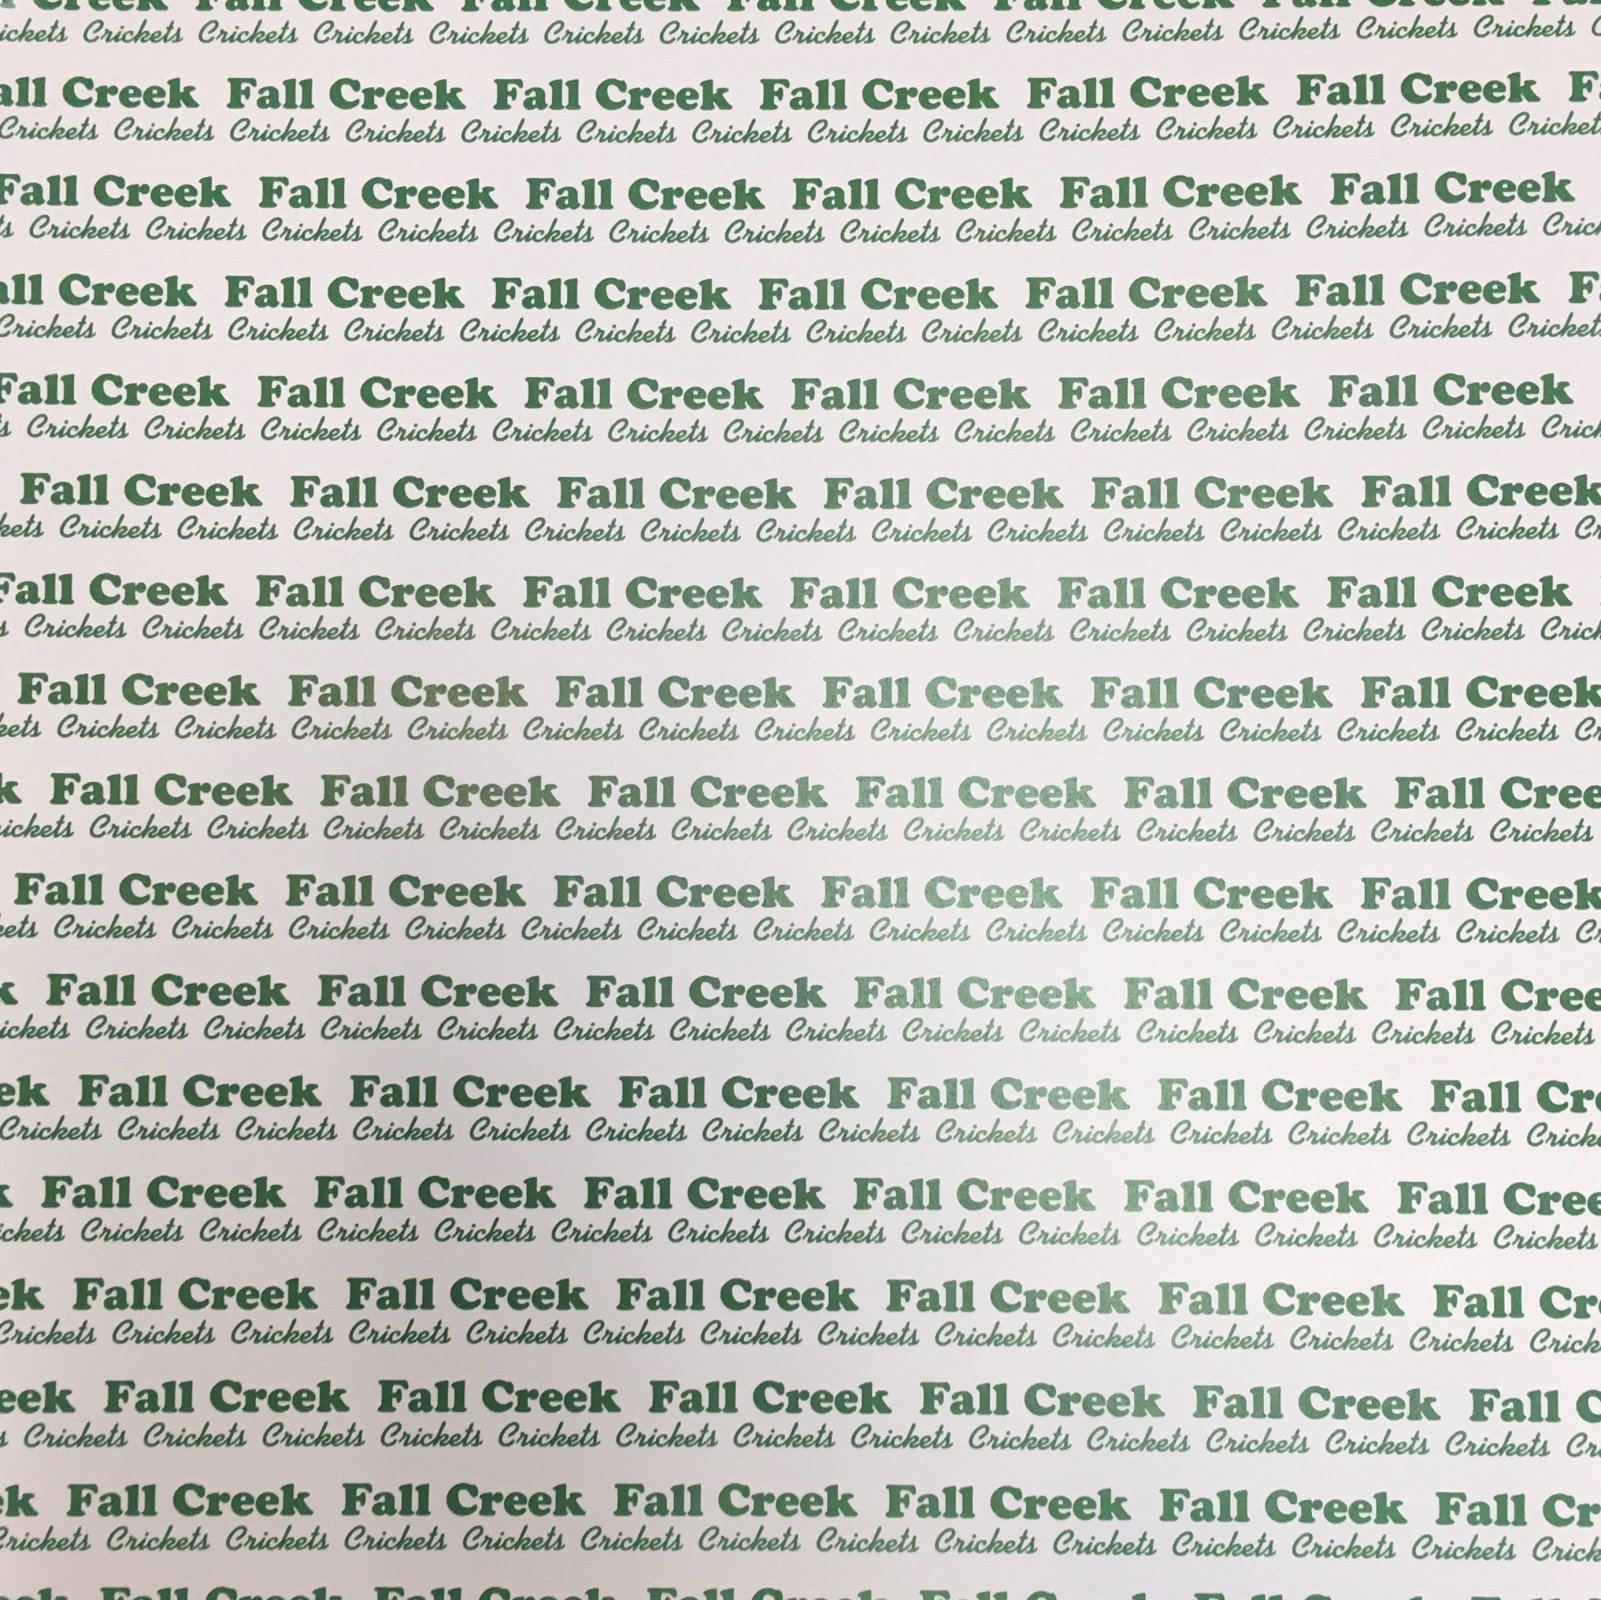 FALL CREEK CRICKETS 12X12